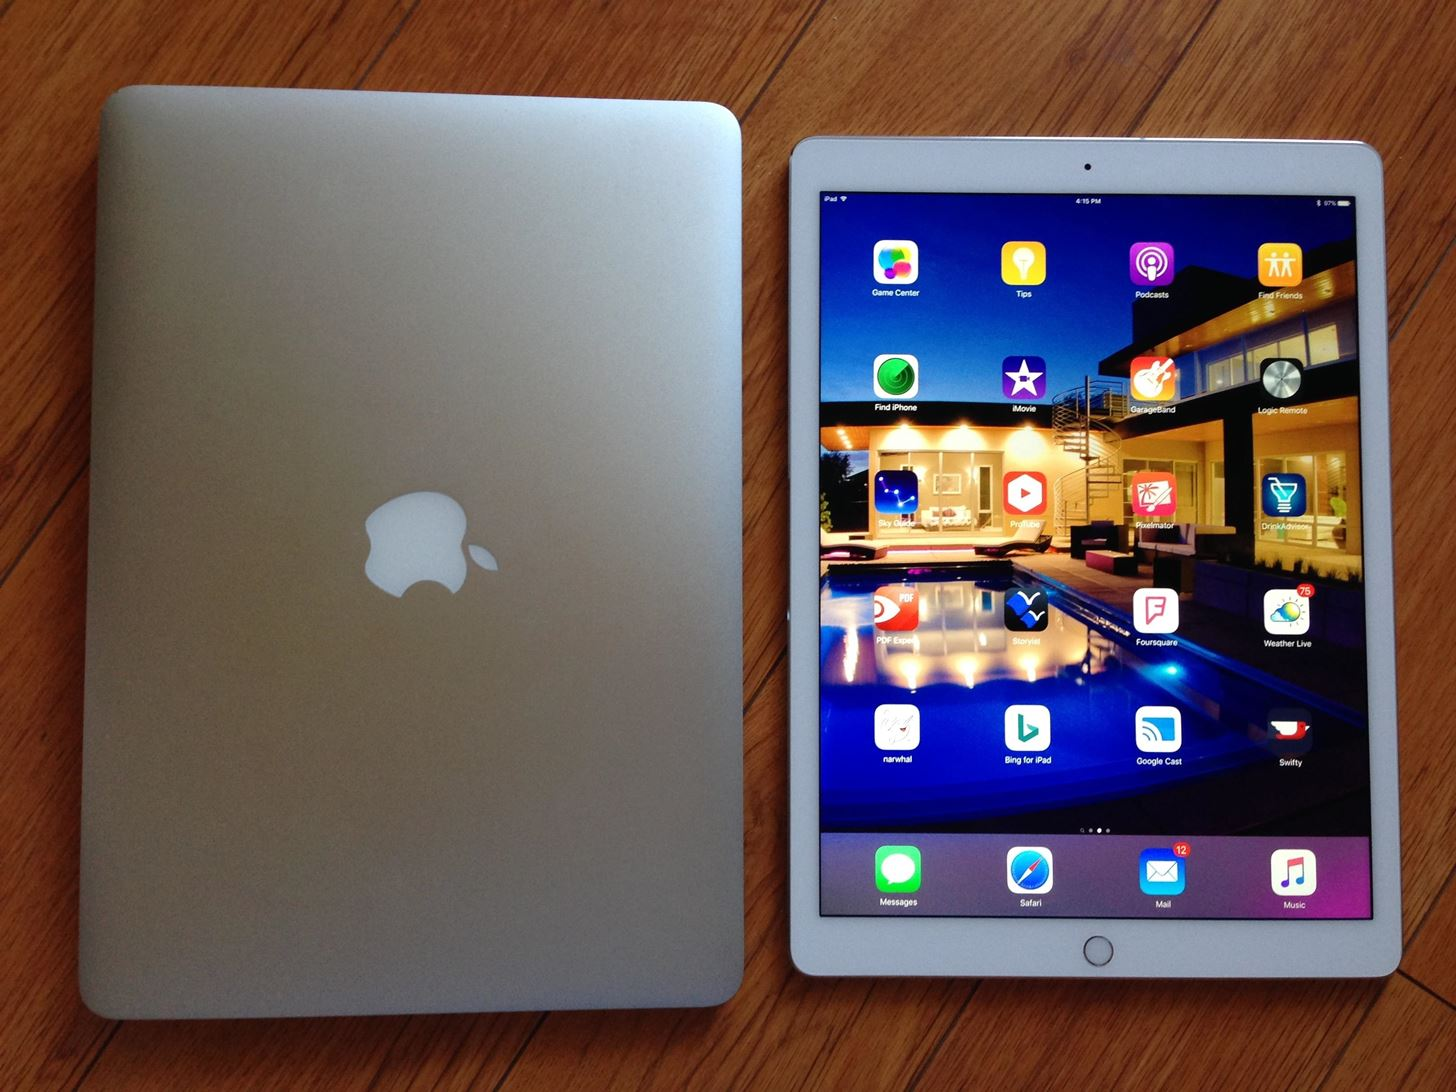 Review: My 6 Months Using the 12.9-Inch iPad Pro